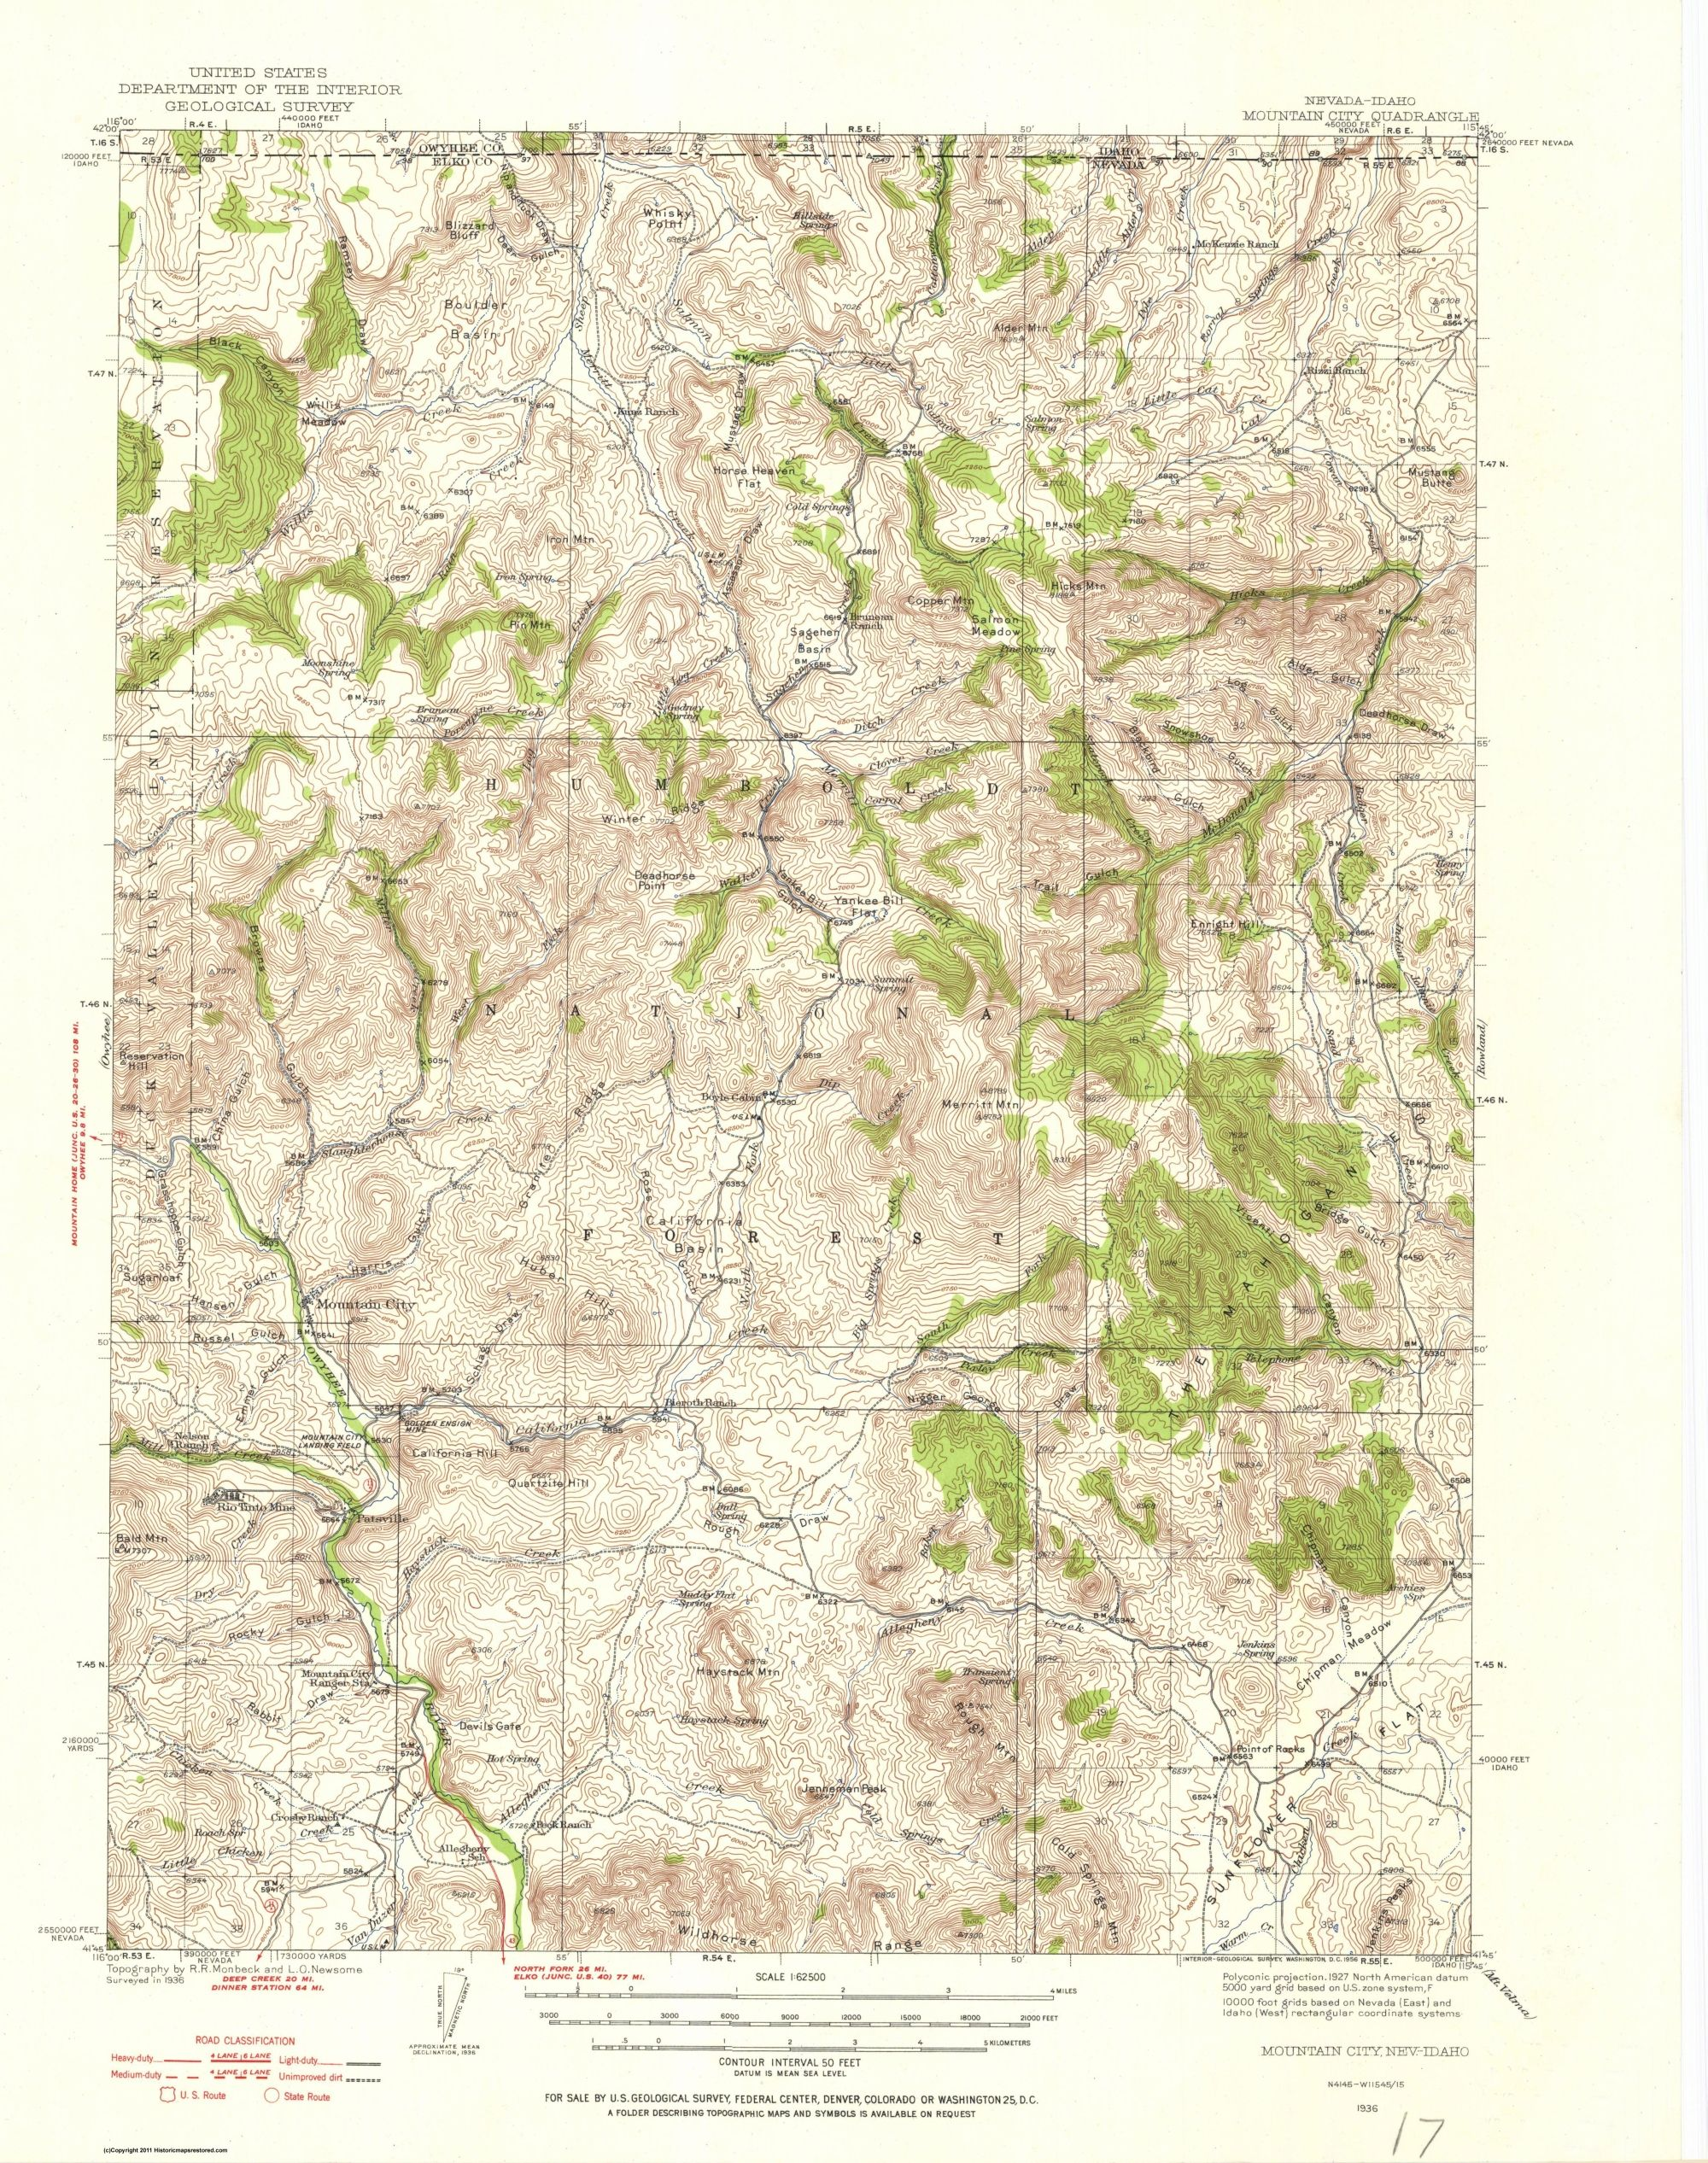 Topographical Map - Mountain City Nevada, Idaho Quad - USGS 1936 - 17 x  21.56